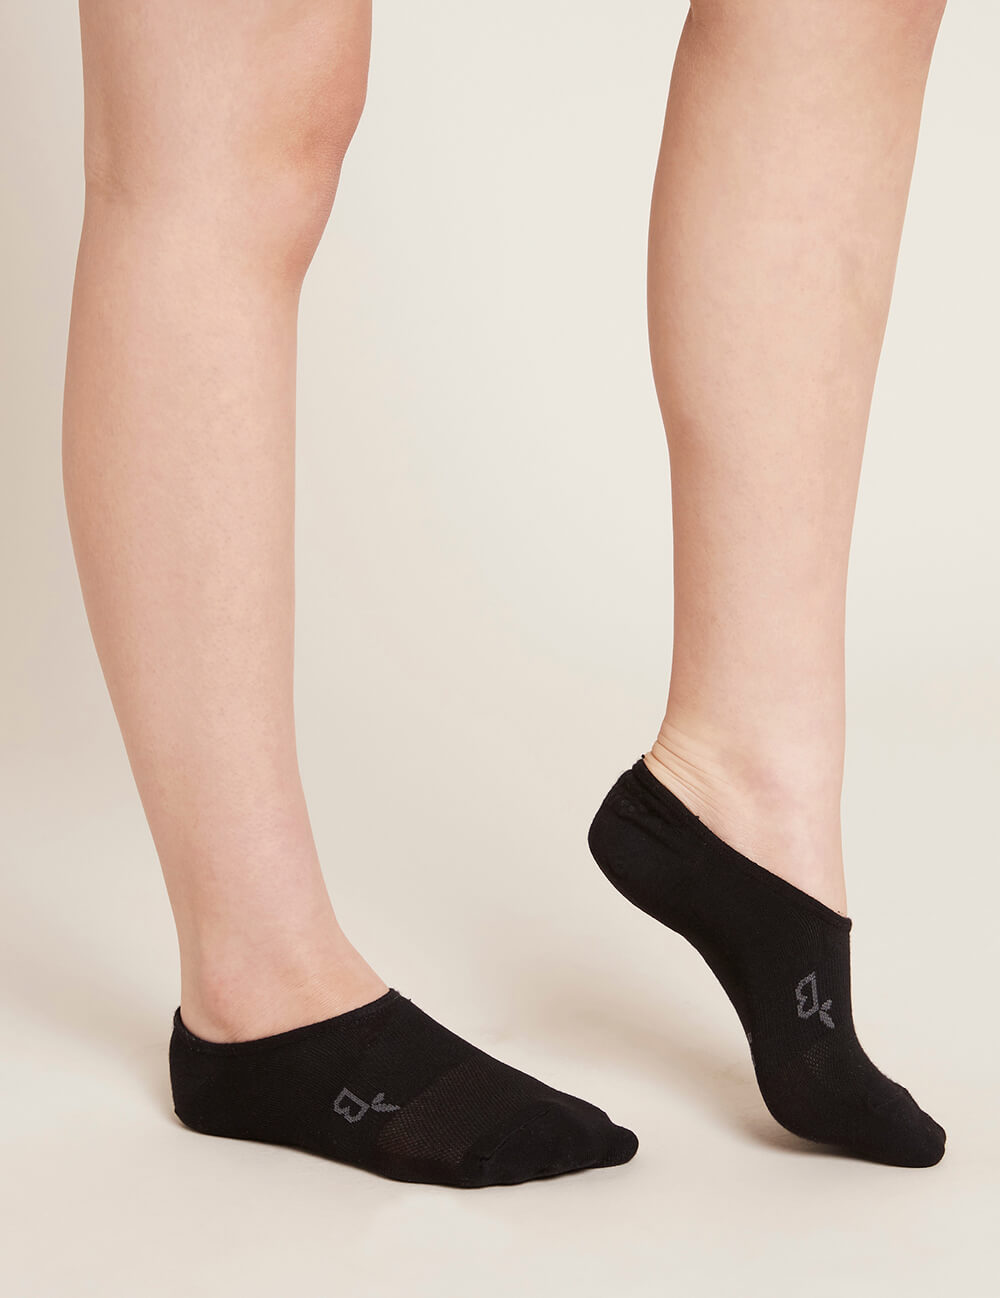 Women's Invisible Active Sock